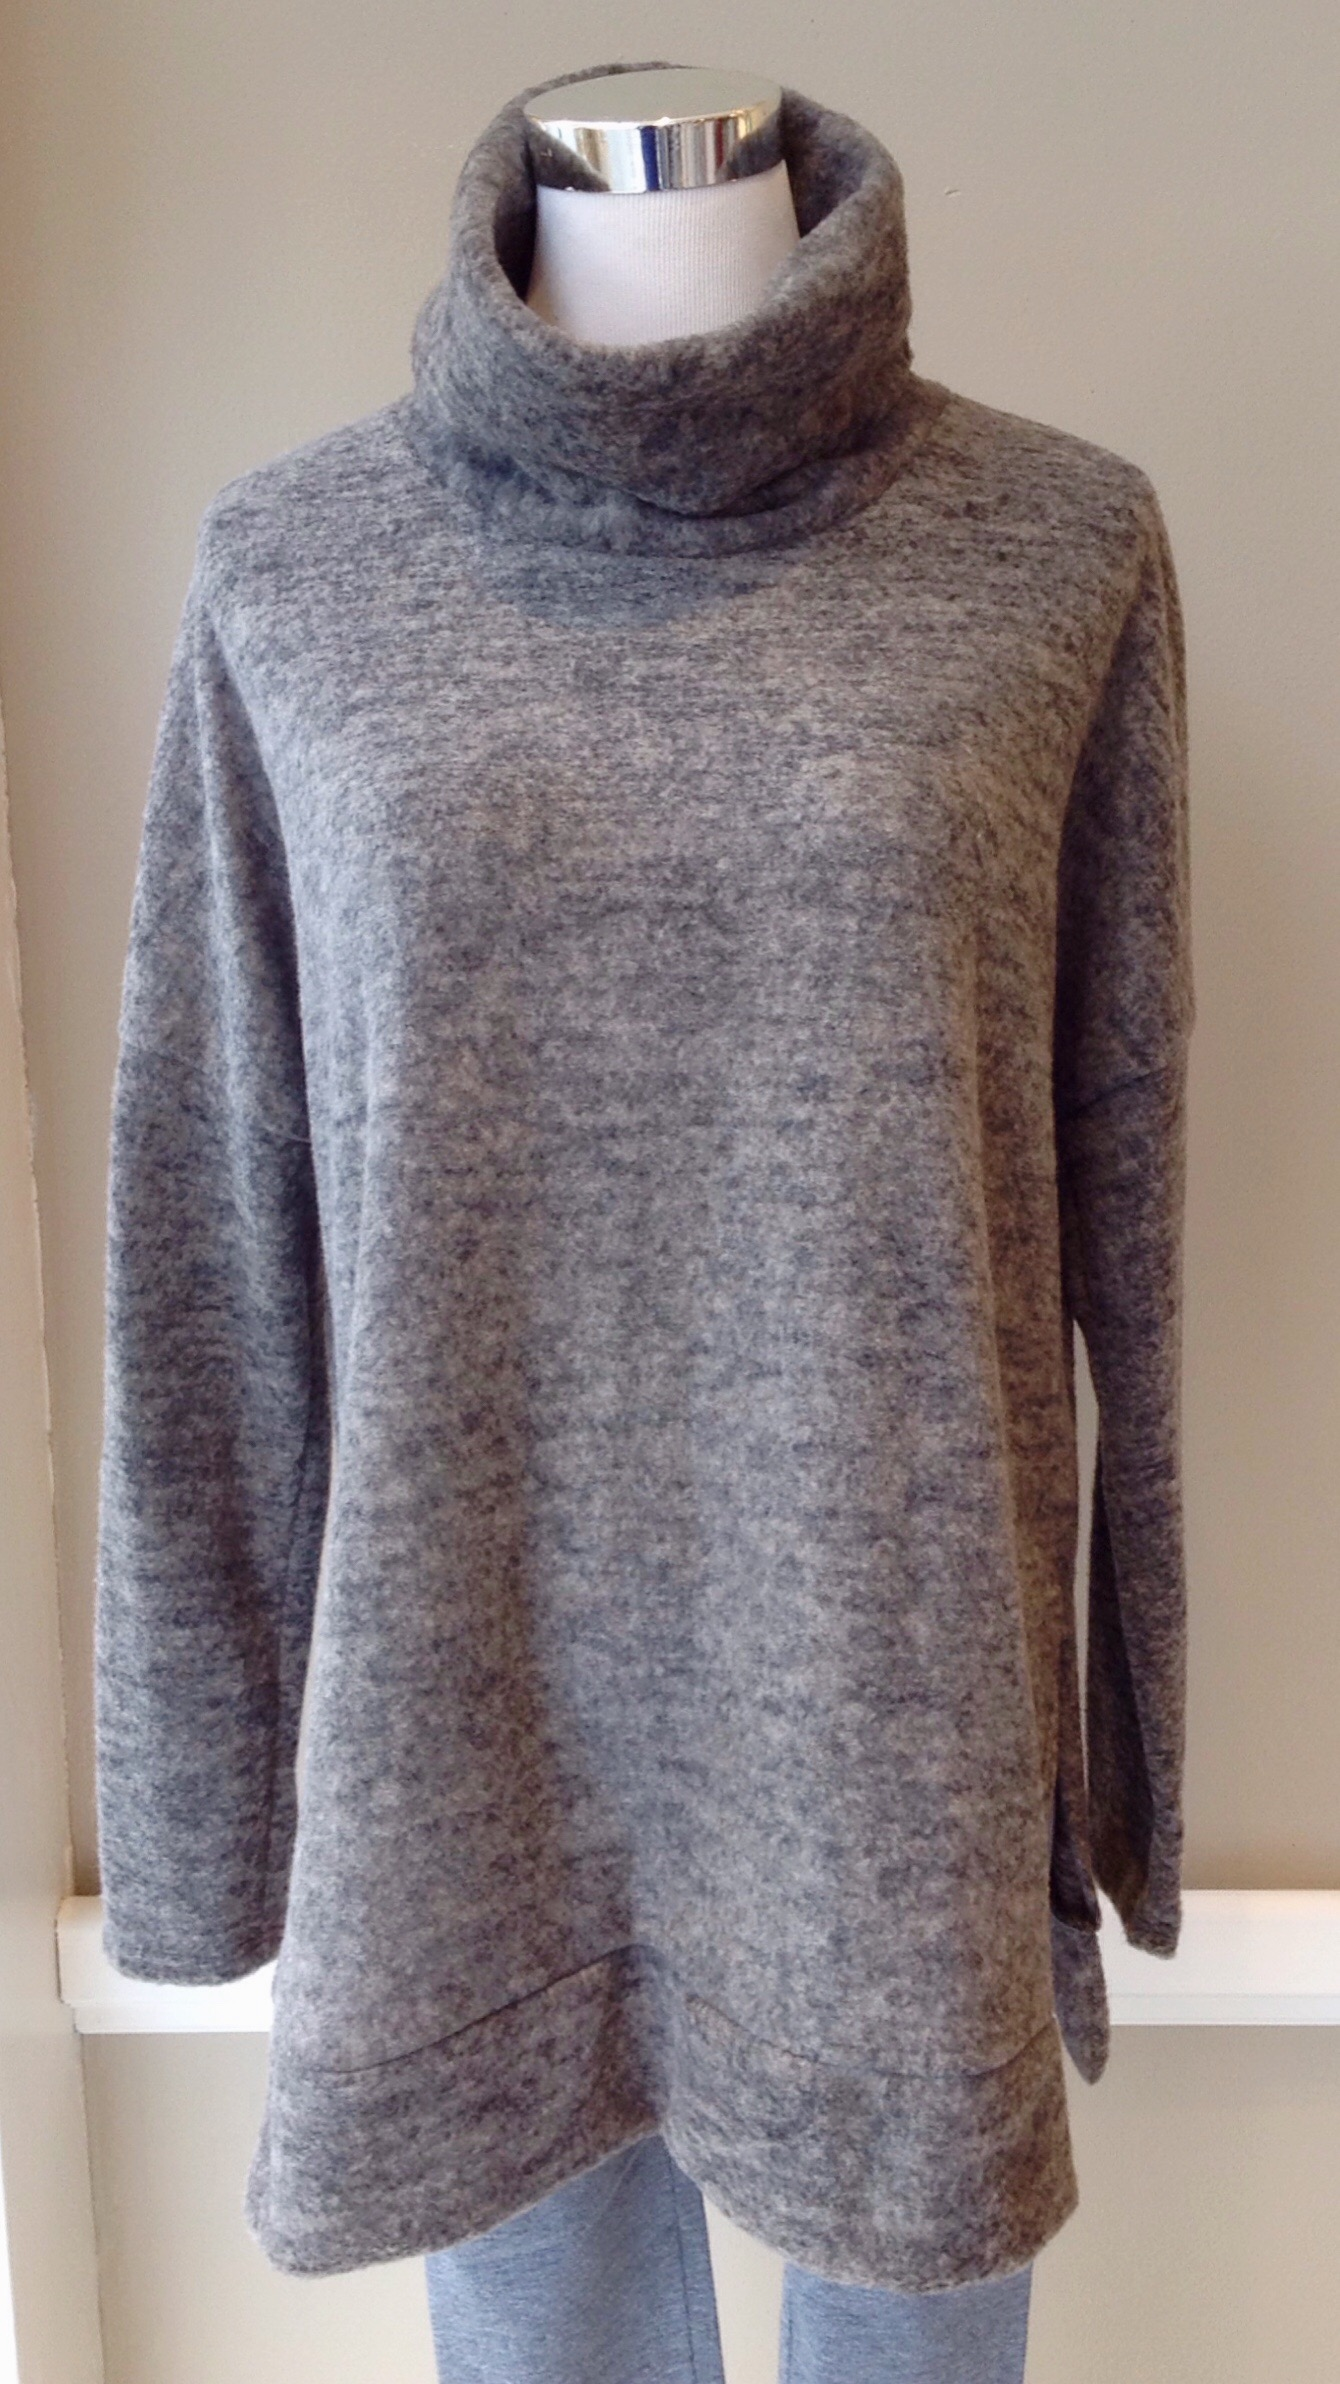 Fleecy knit sweater with cowl neck and side slits in mocha, $38